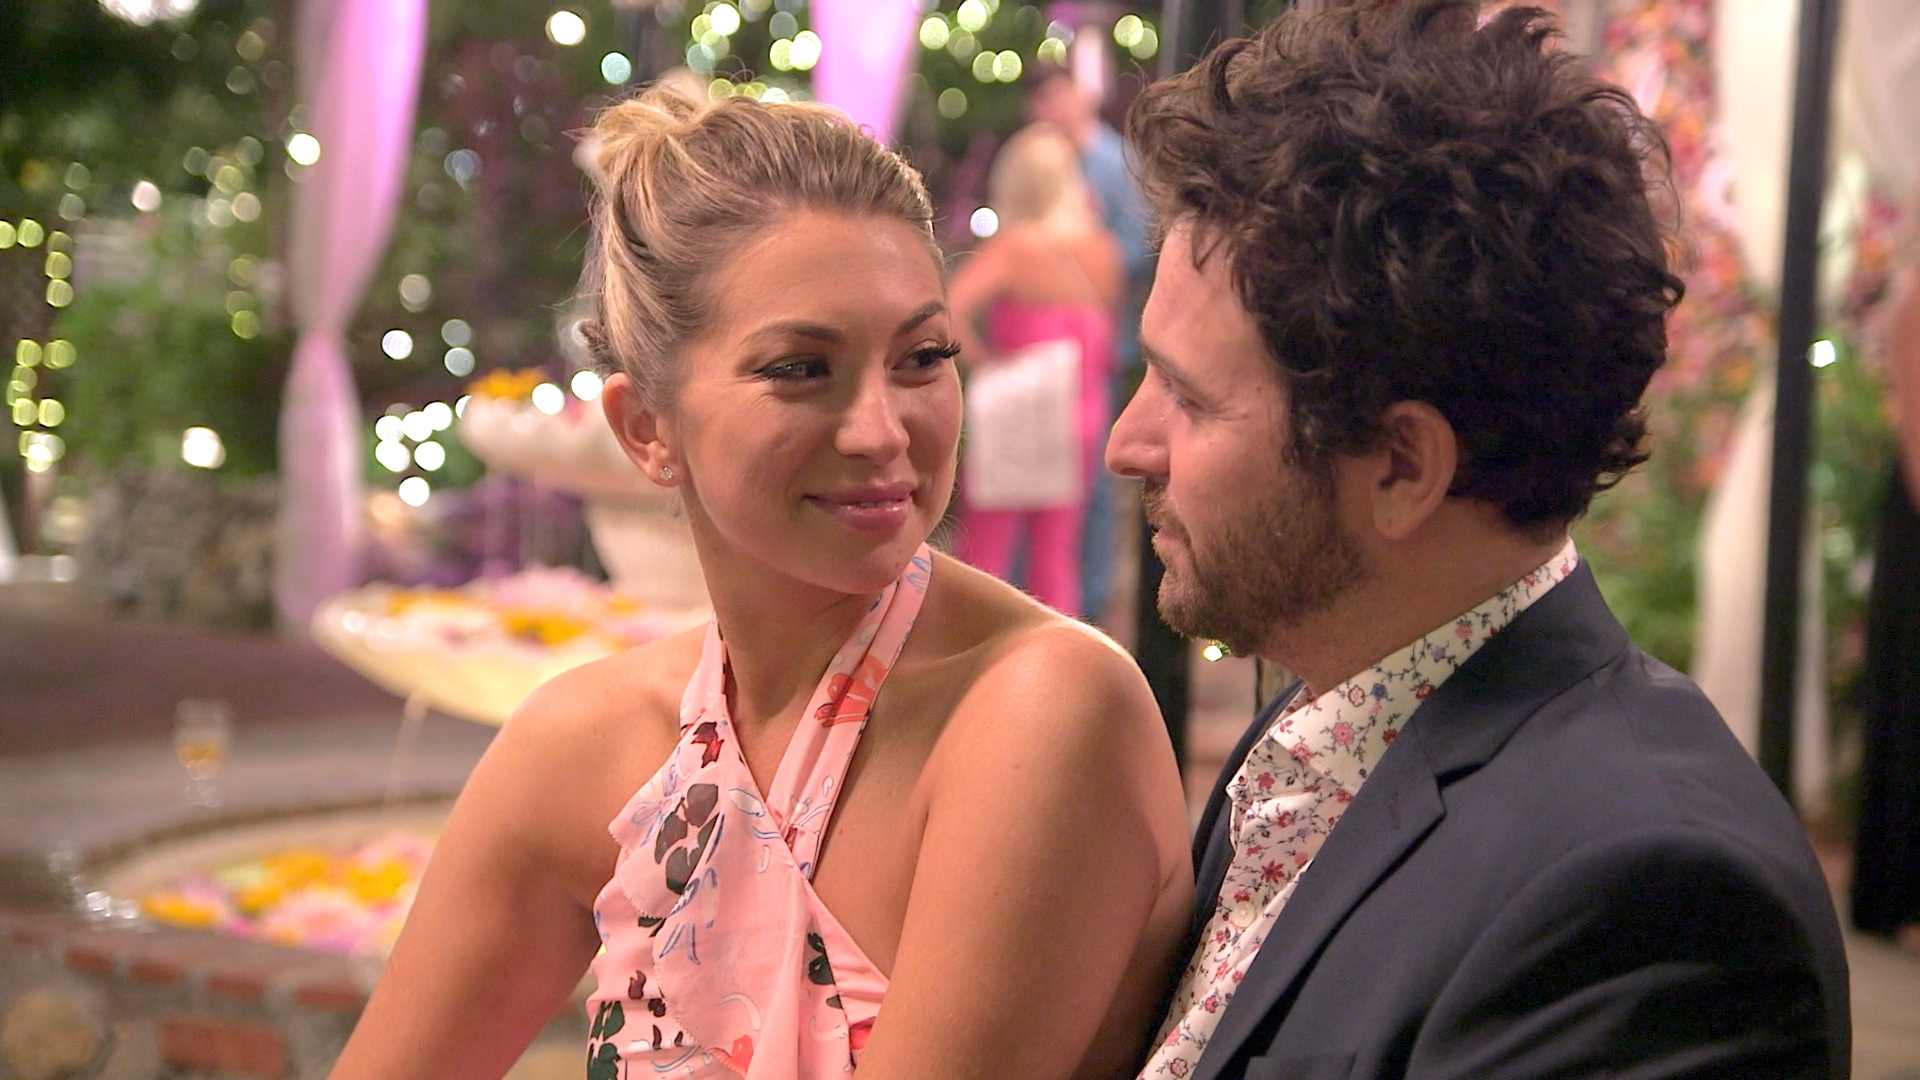 Beau Clark Reveals That He's Going to Propose to Stassi Schroeder